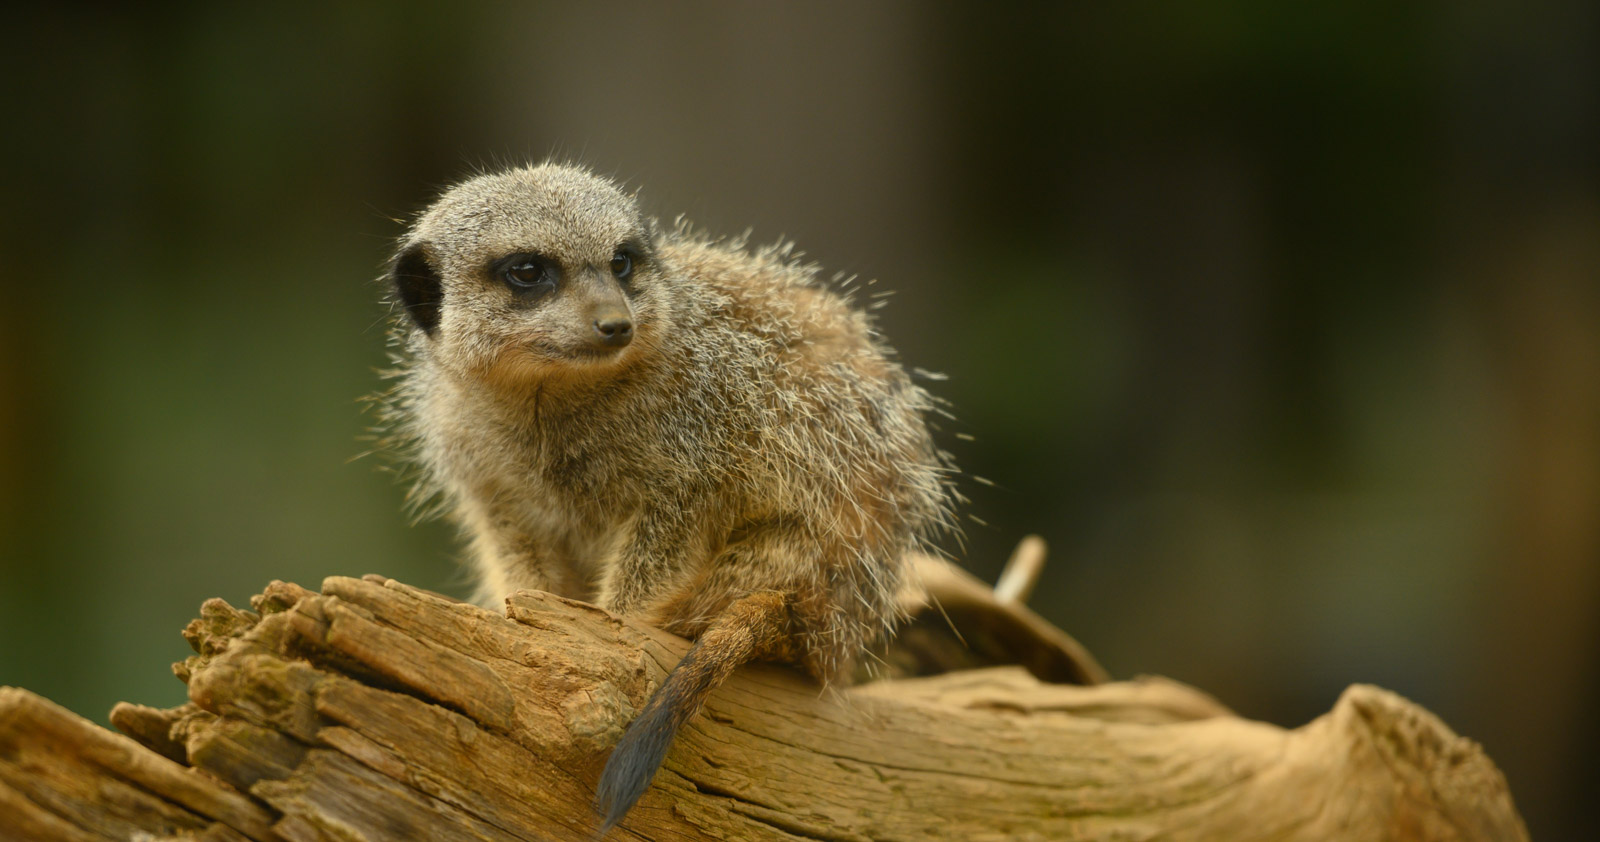 <h5>Meerkat at Colchester Zoo</h5><p>By Kita Lupprian</p>